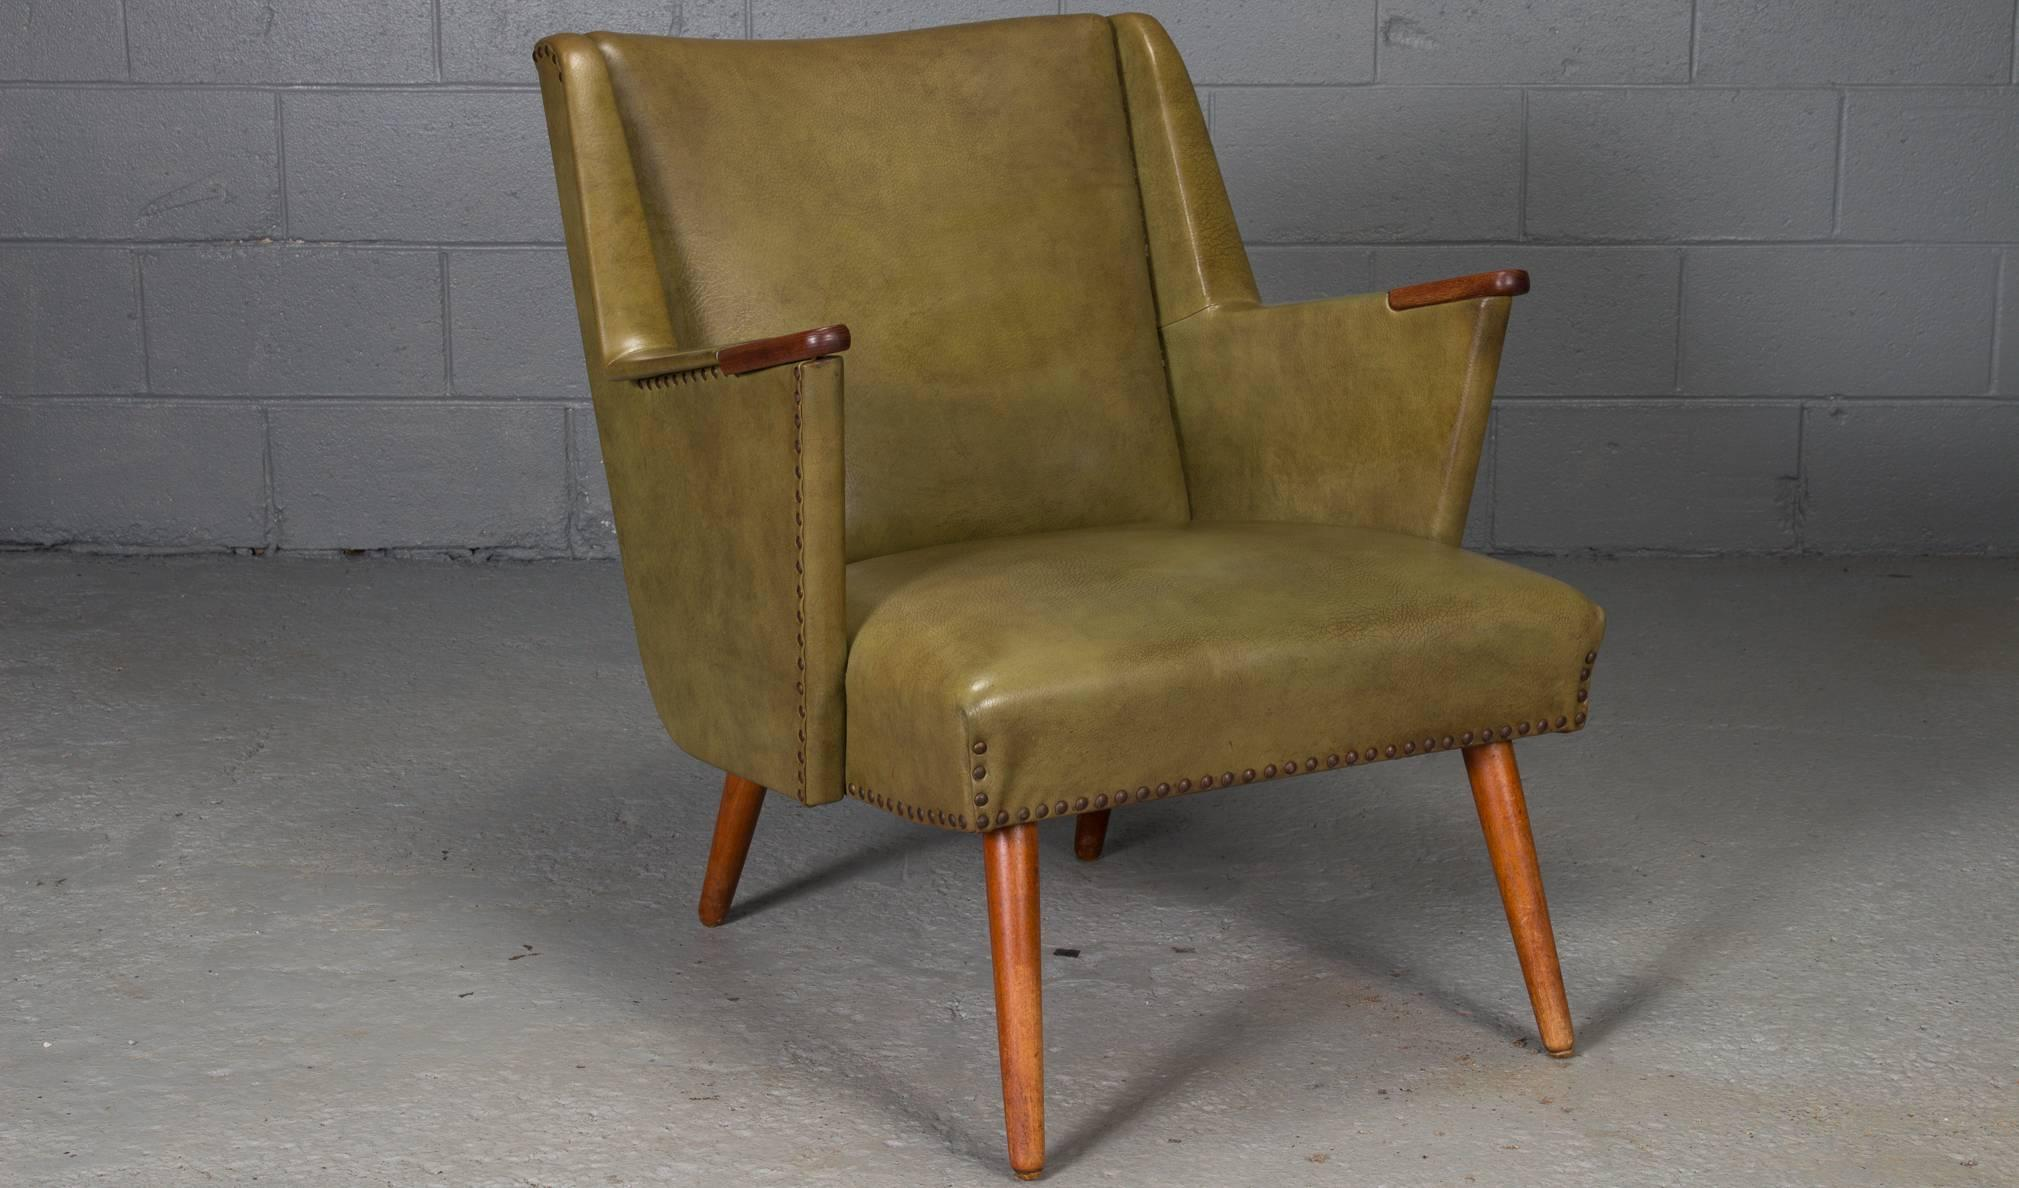 low back lawn chair 9 swing for garden exquisite danish modern lounge easy decaso mid century sale image 3